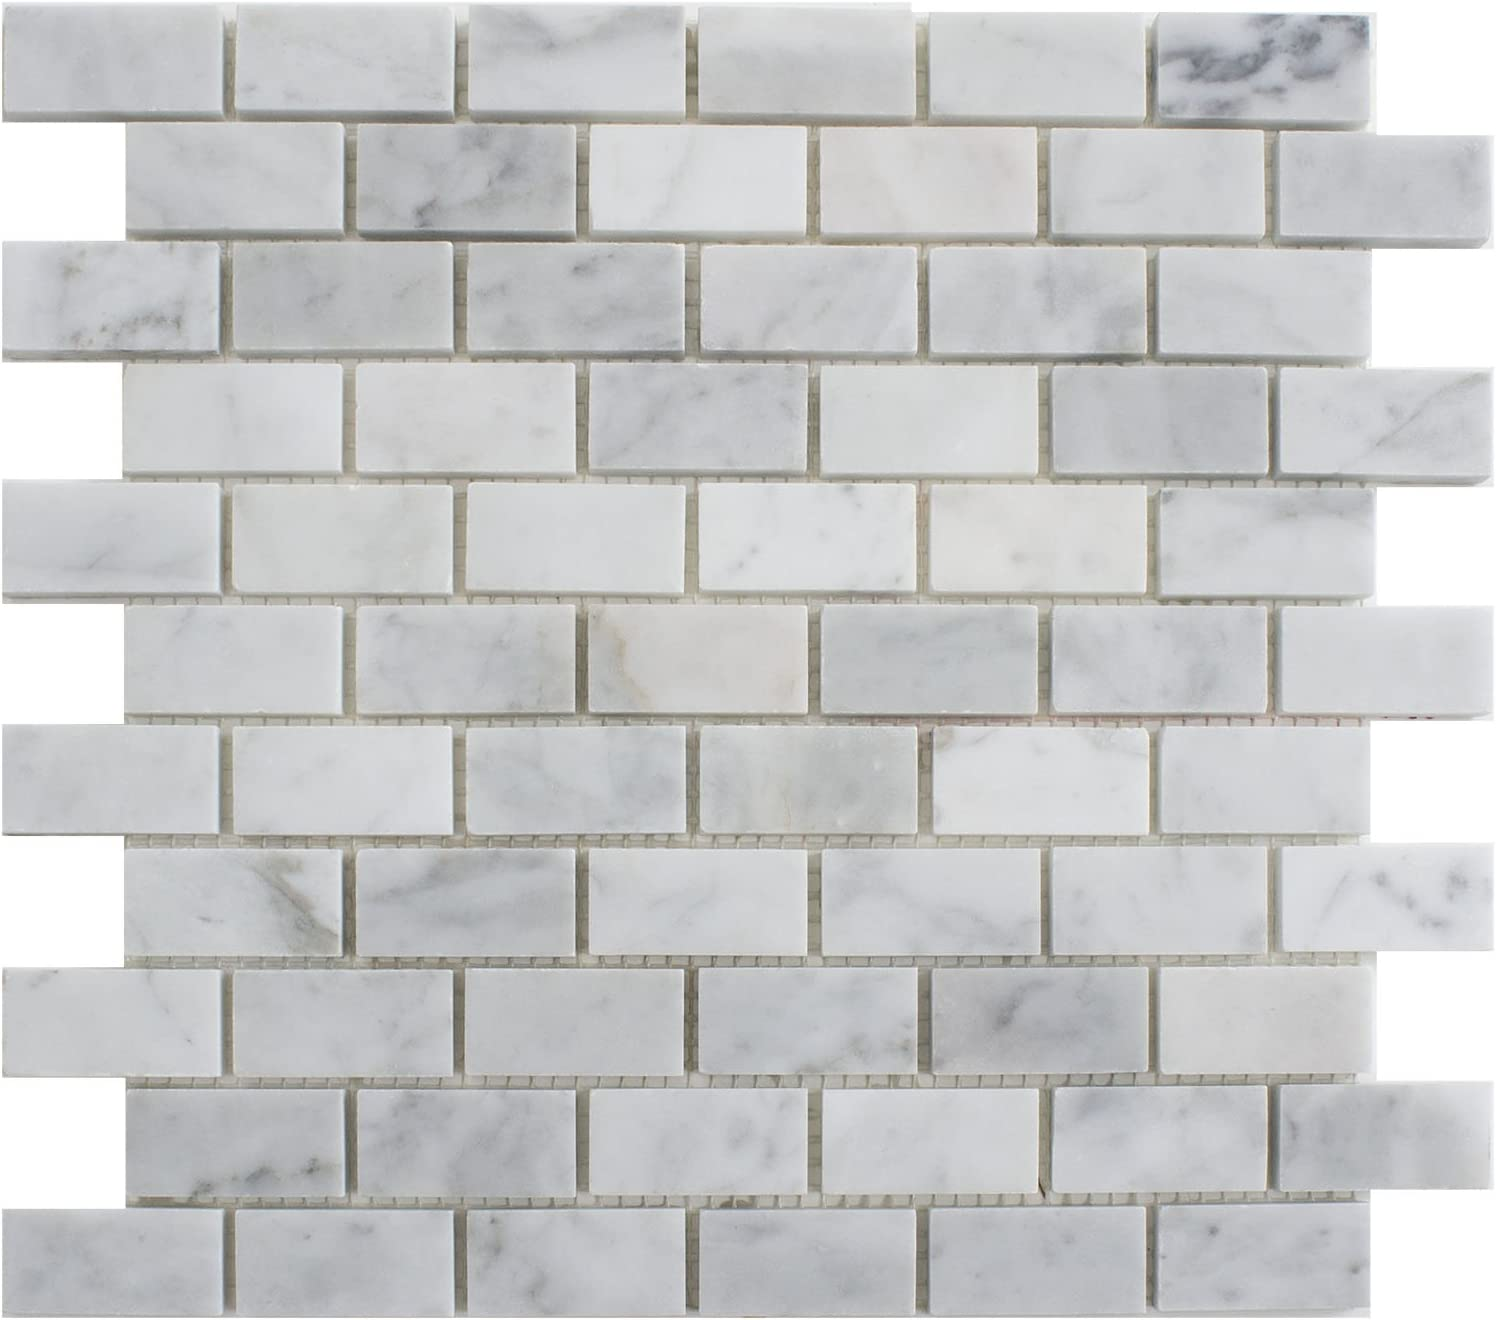 Max 88% OFF 5 Sheets Genuine Carrara White Chi Manufacturer direct delivery Tile Mosaic Marble CWMM0102